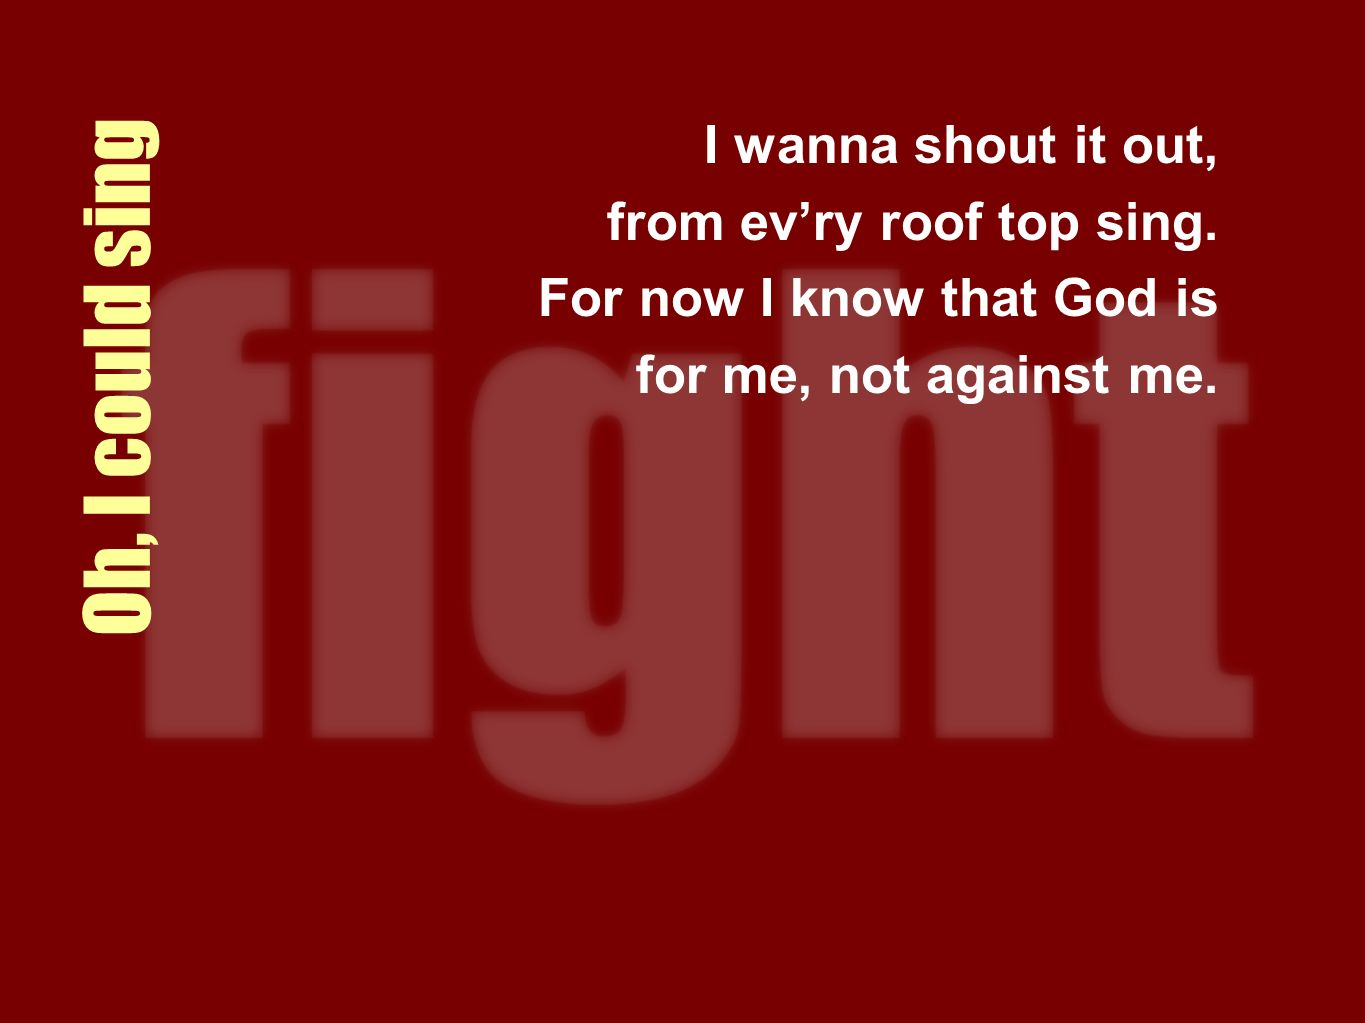 Oh, I could sing I wanna shout it out, from evry roof top sing. For now I know that God is for me, not against me.